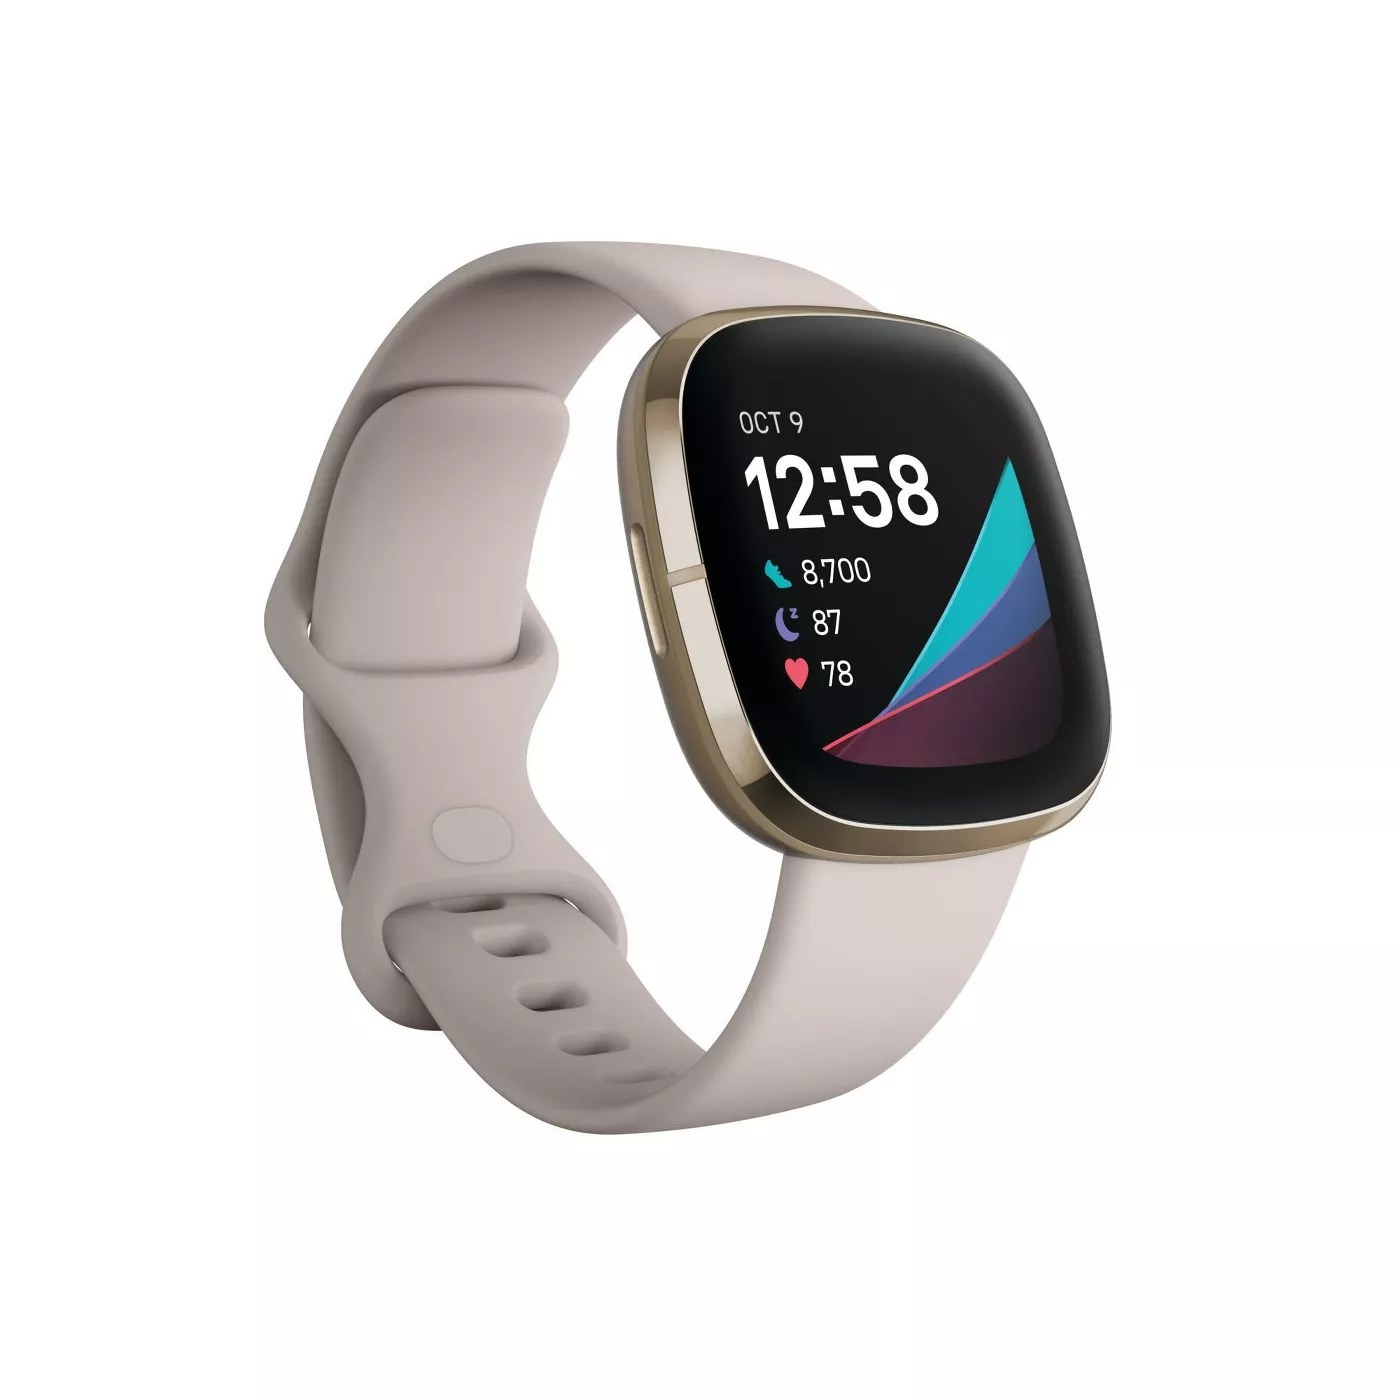 The smartwatch in gold and white